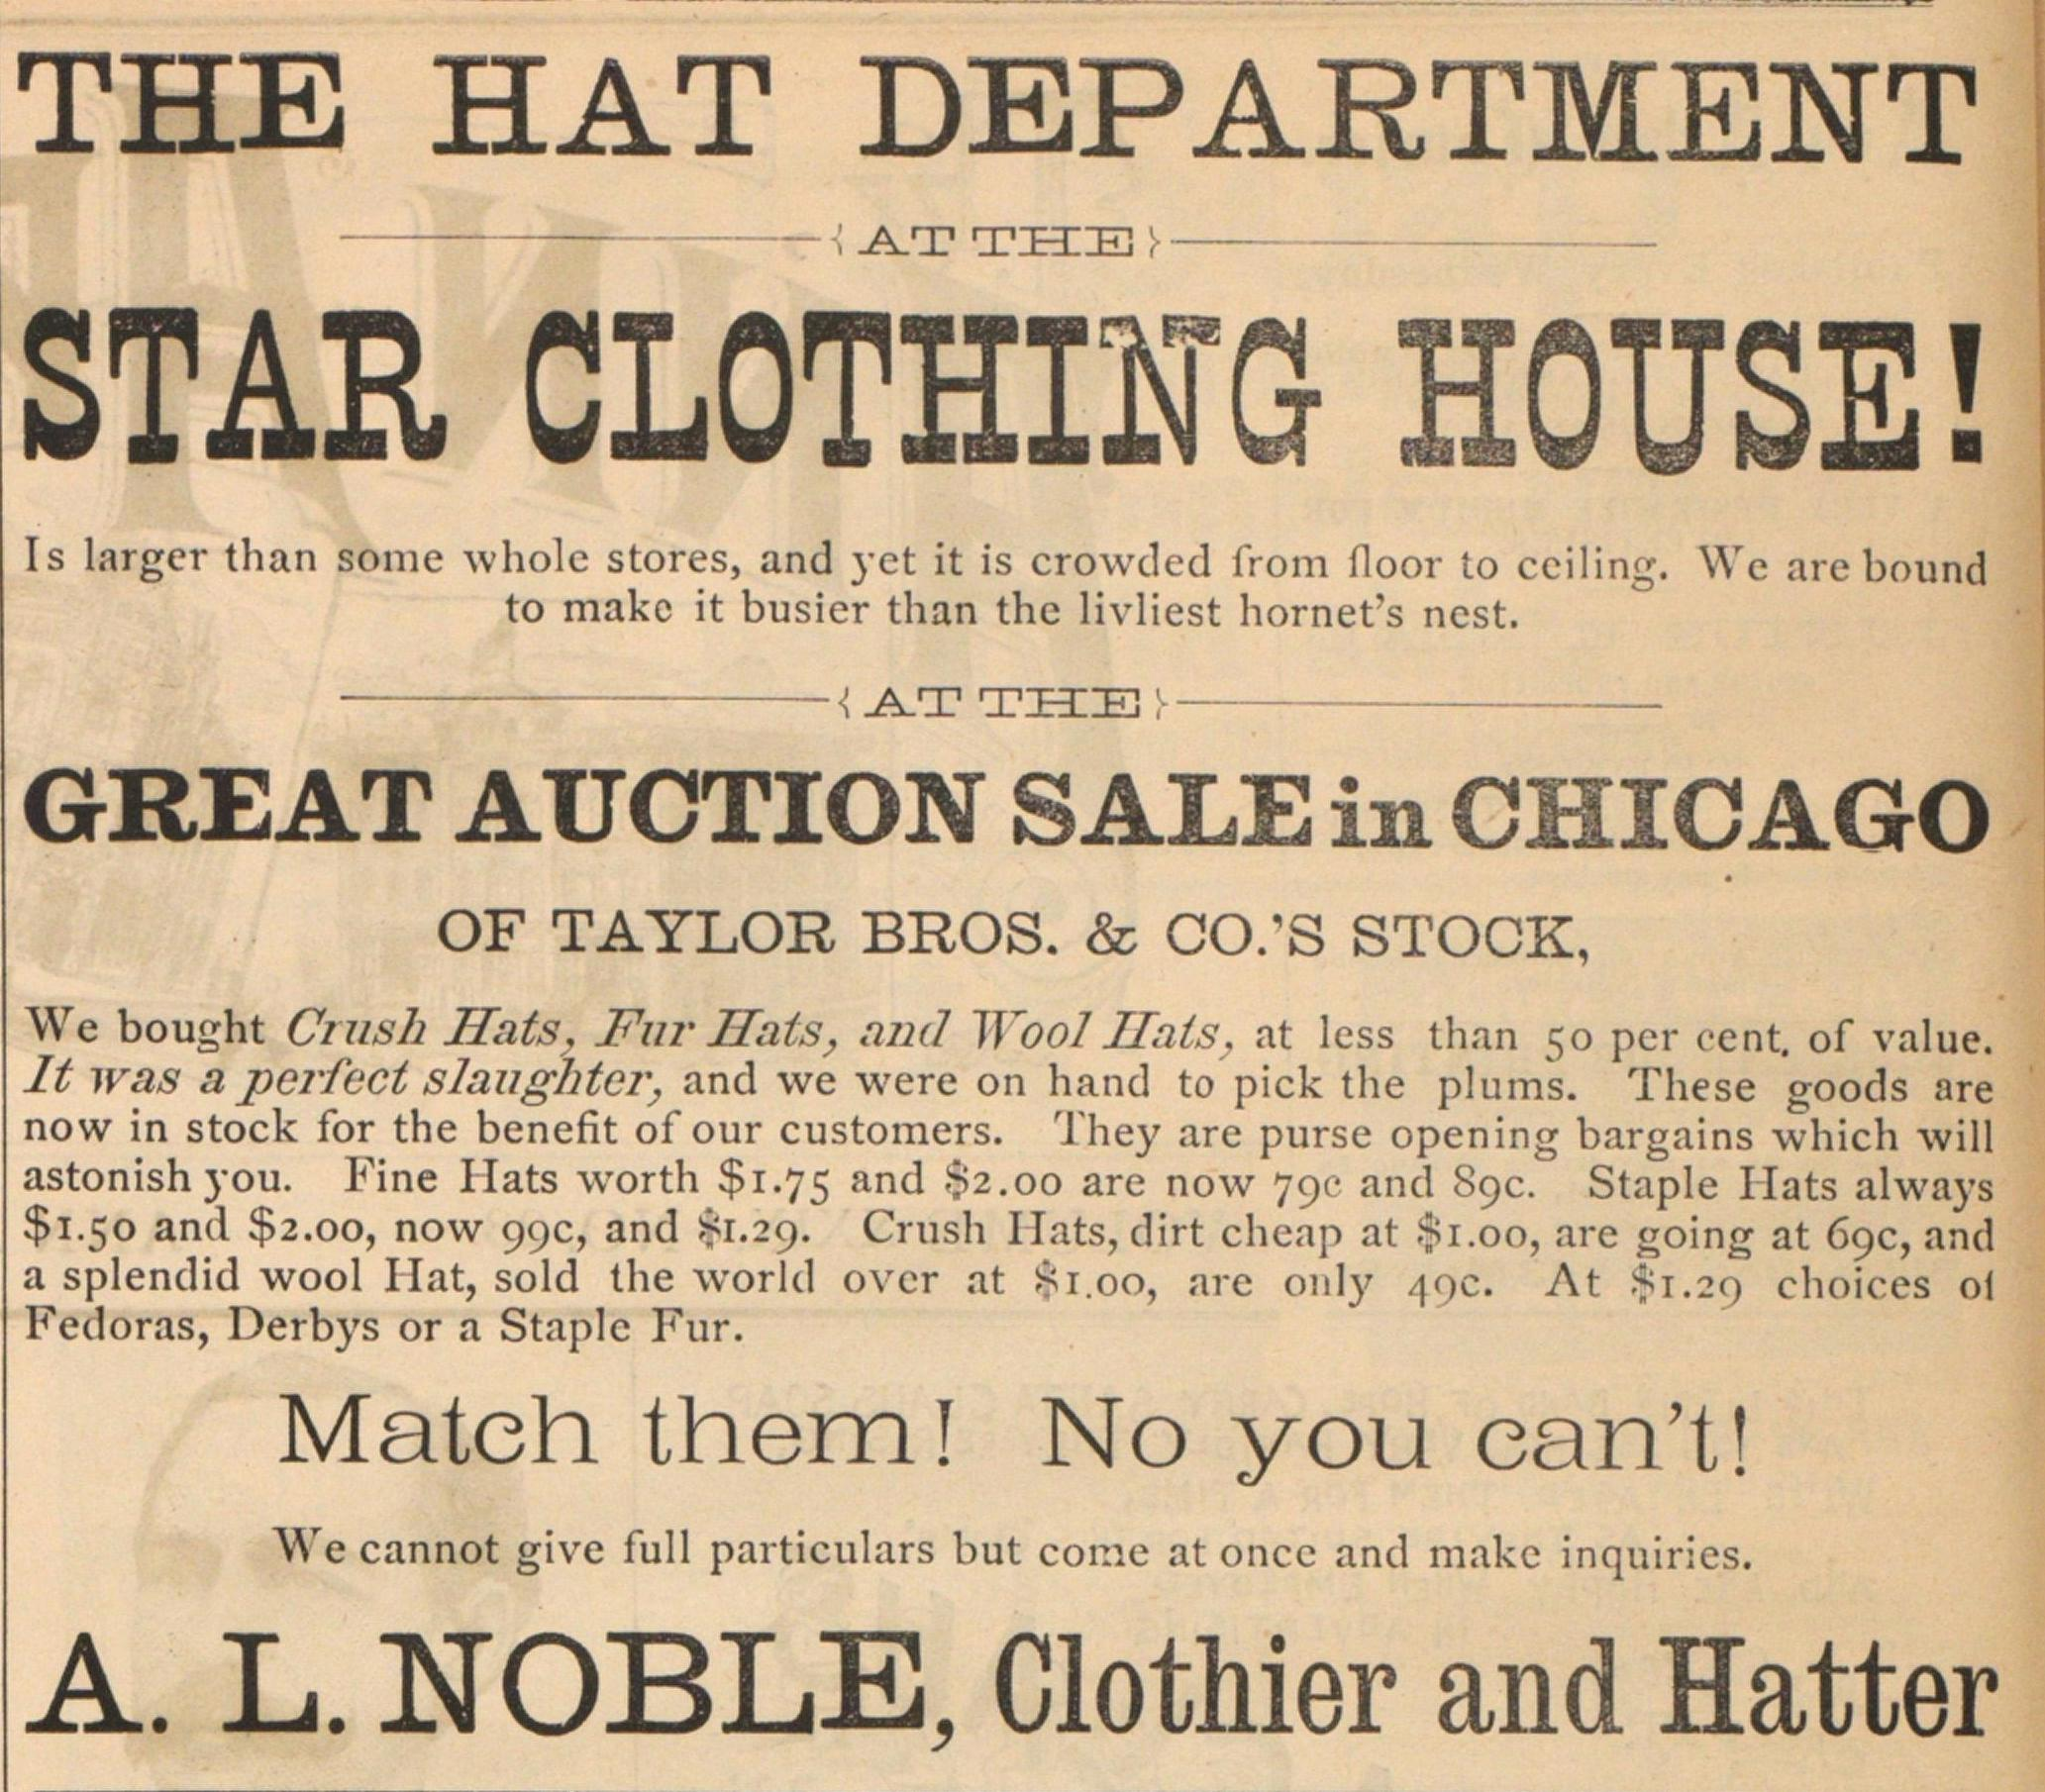 A. L. Noble, Clothier And Hatter image